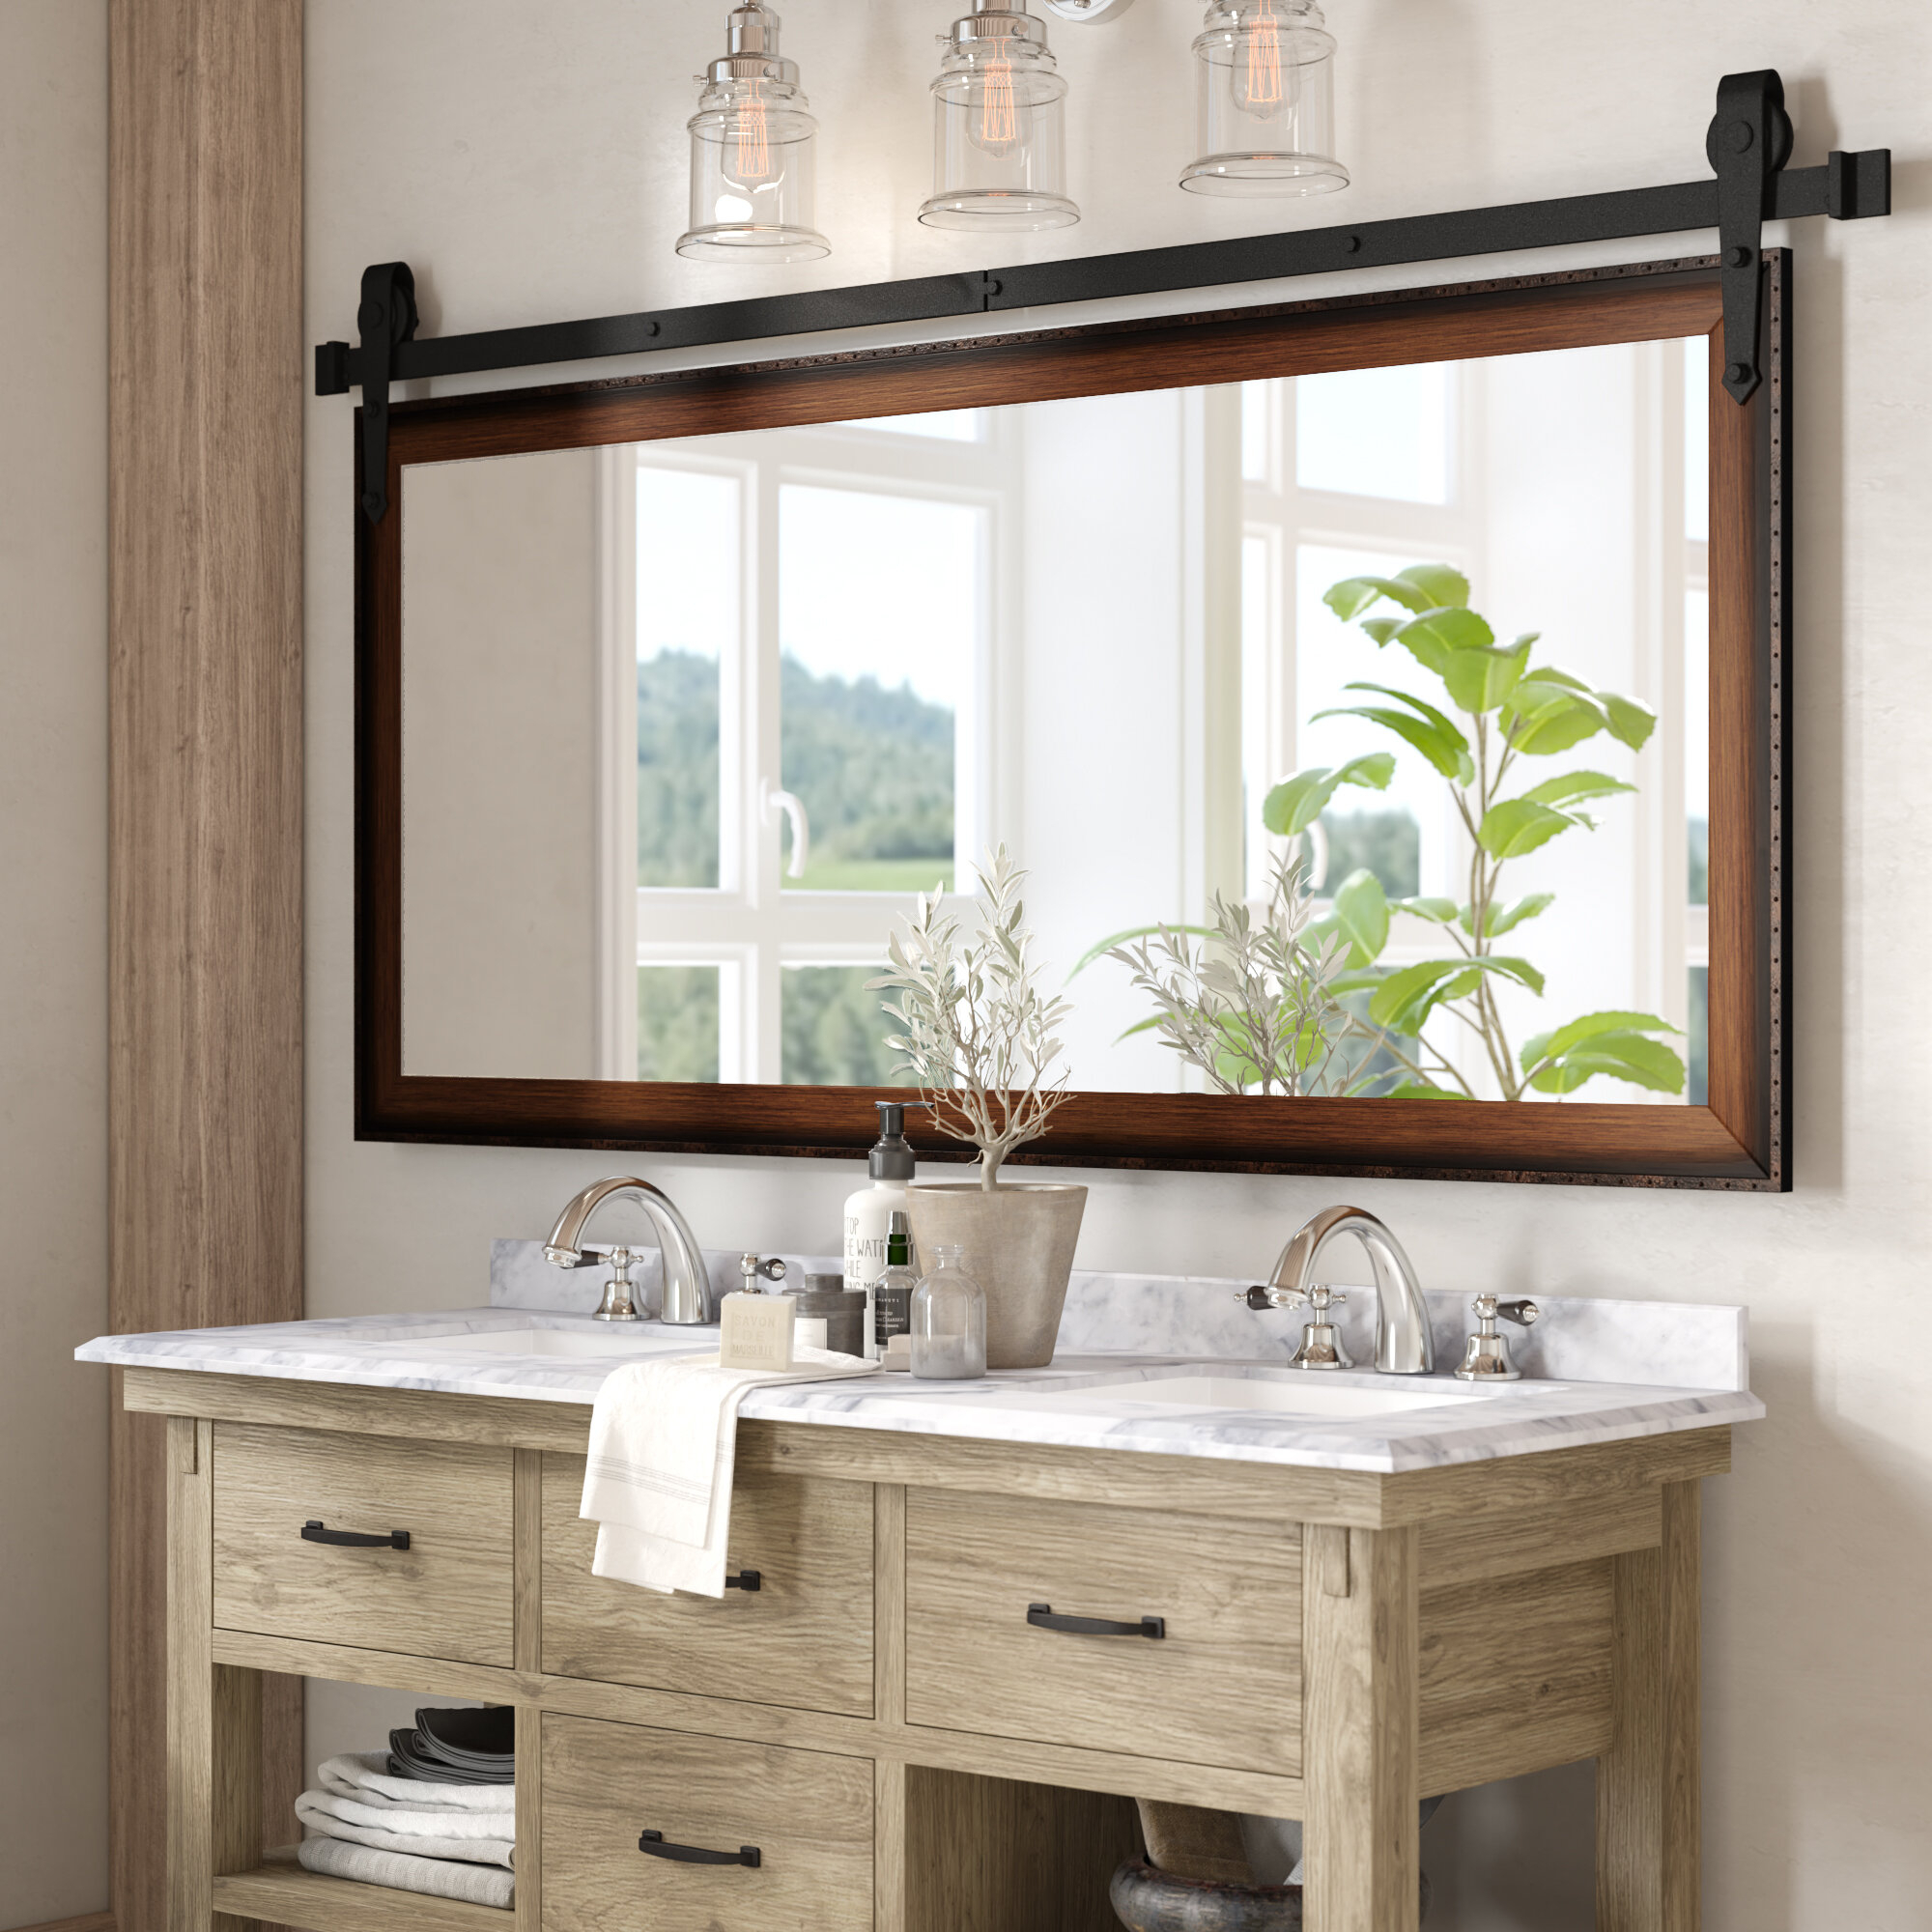 56 Inch Bathroom Vanity Mirror | Wayfair In Vanity Mirrors (View 11 of 20)